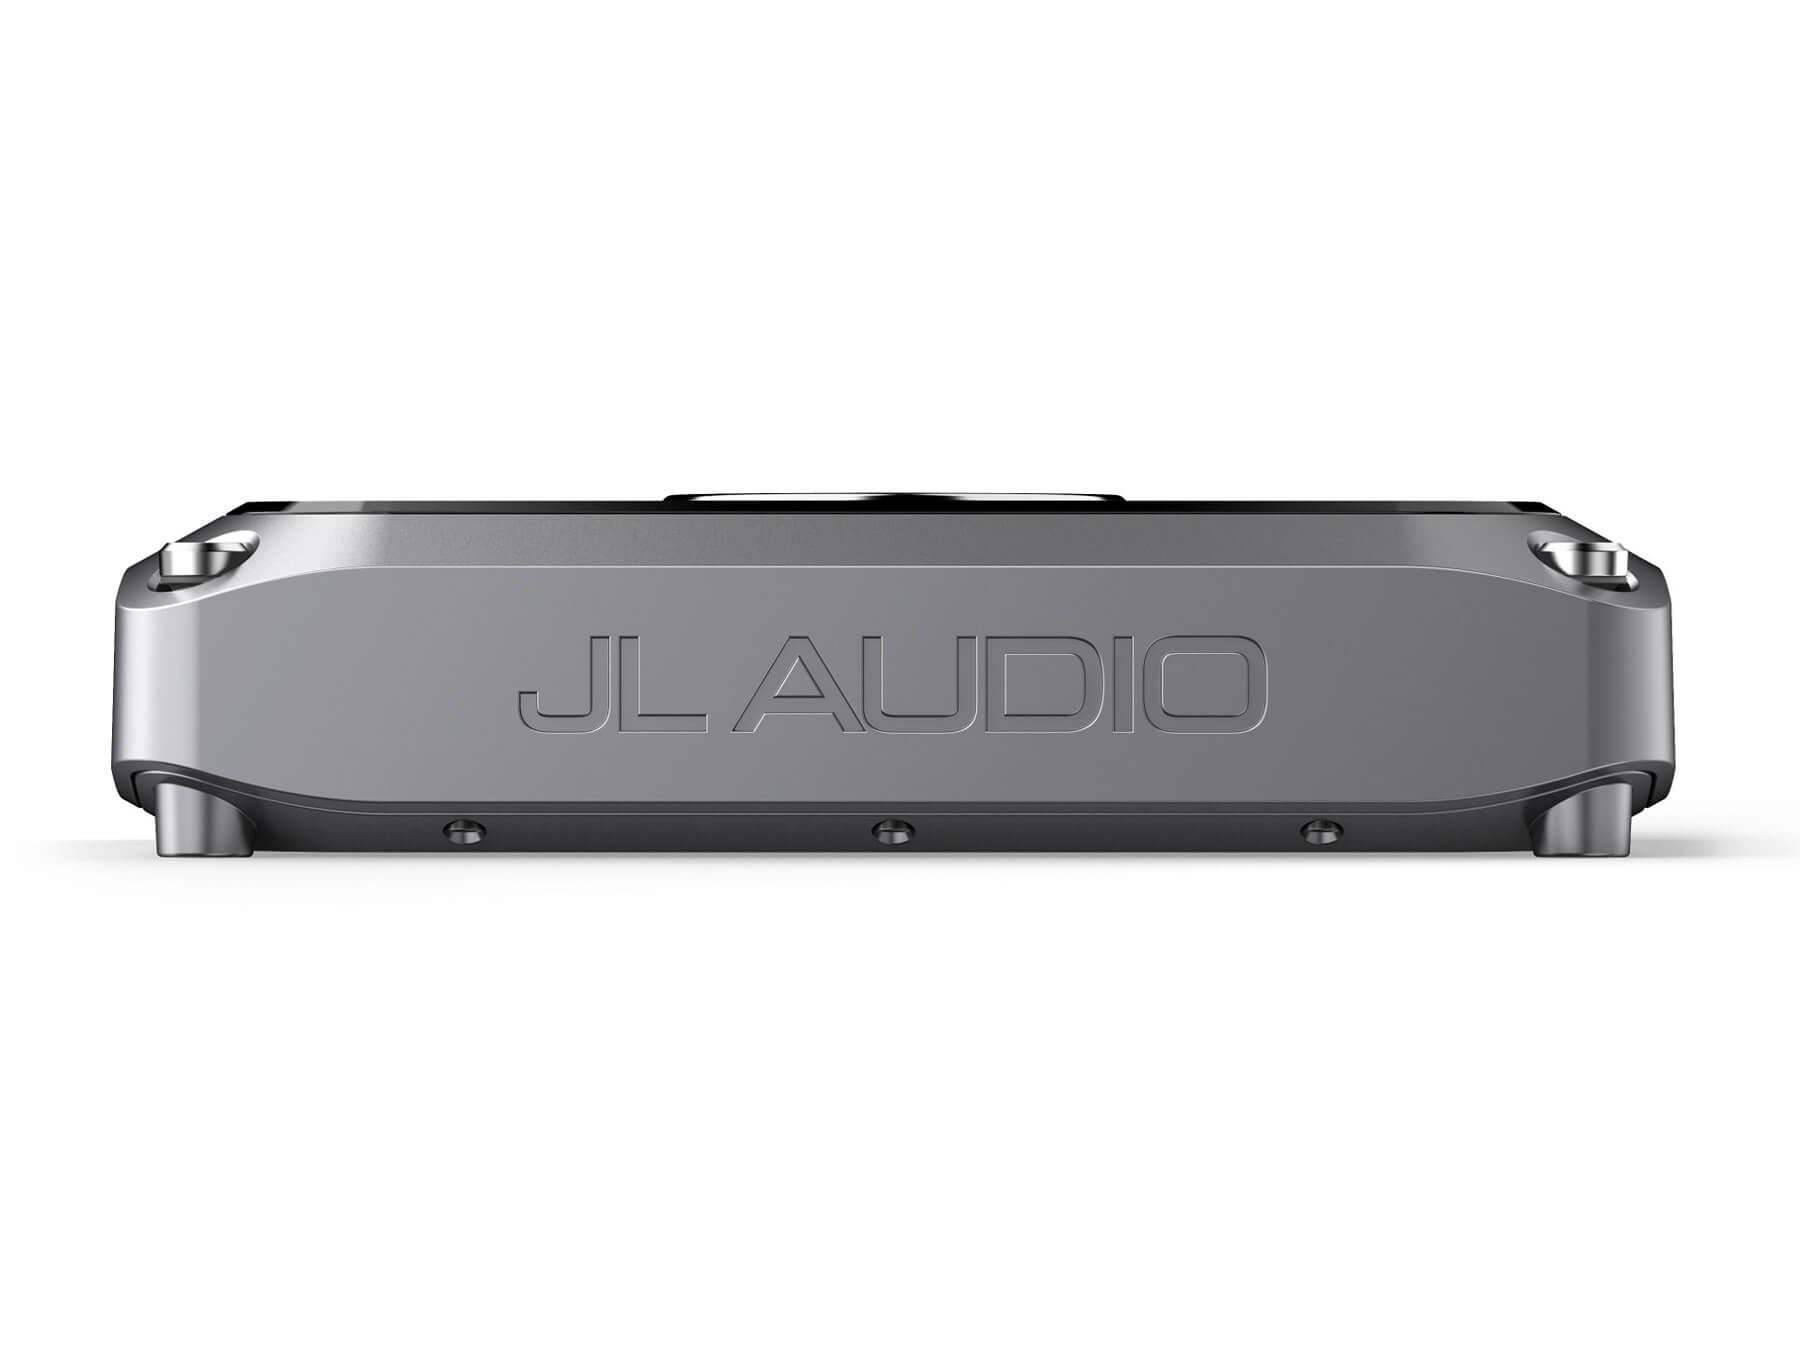 JL Audio VX400/4i - 4 Channel Class D Amplifier with DSP - 3